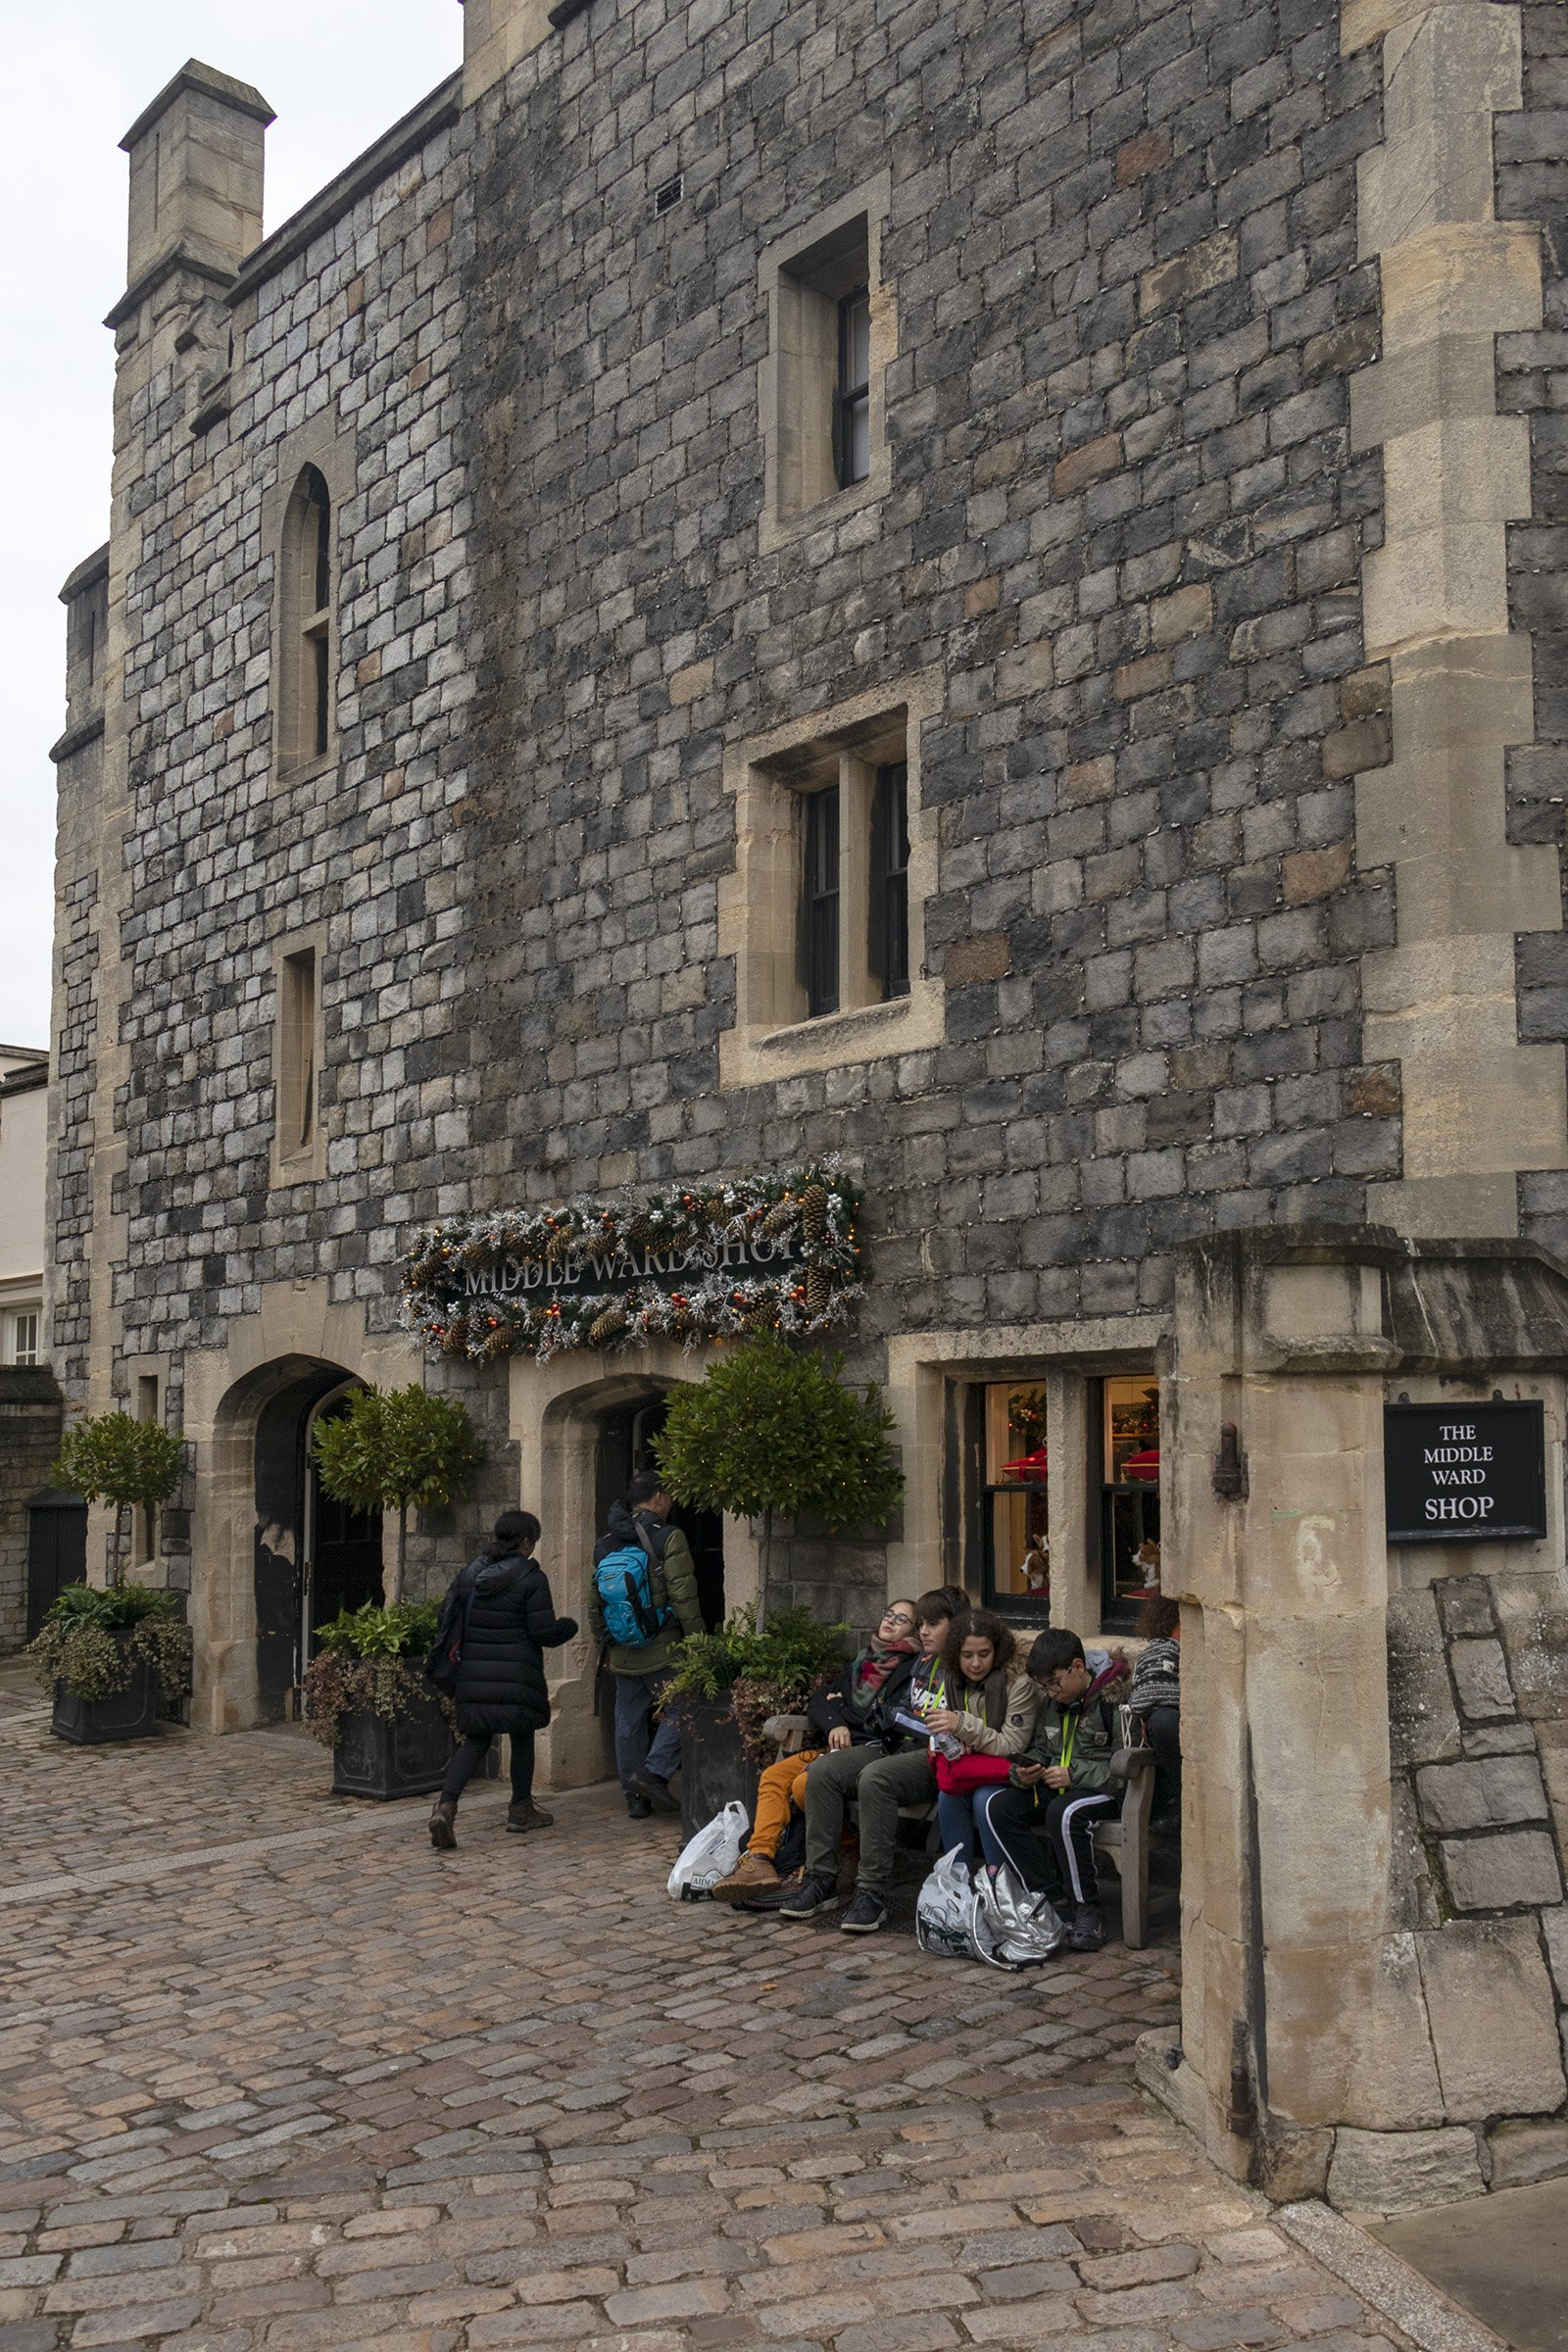 Middle Ward shop, Windsor Castle